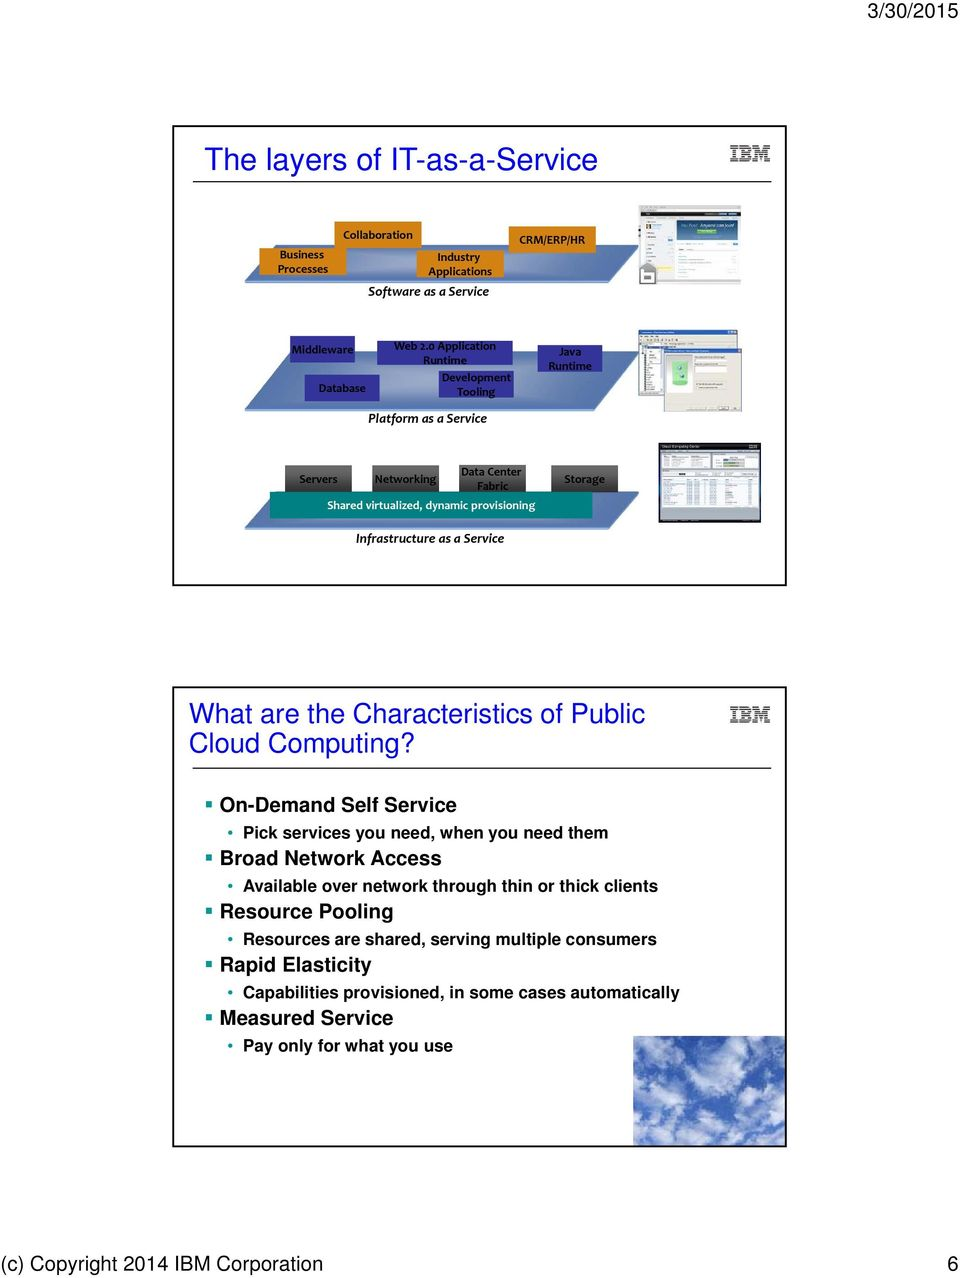 What are the Characteristics of Public Cloud Computing?